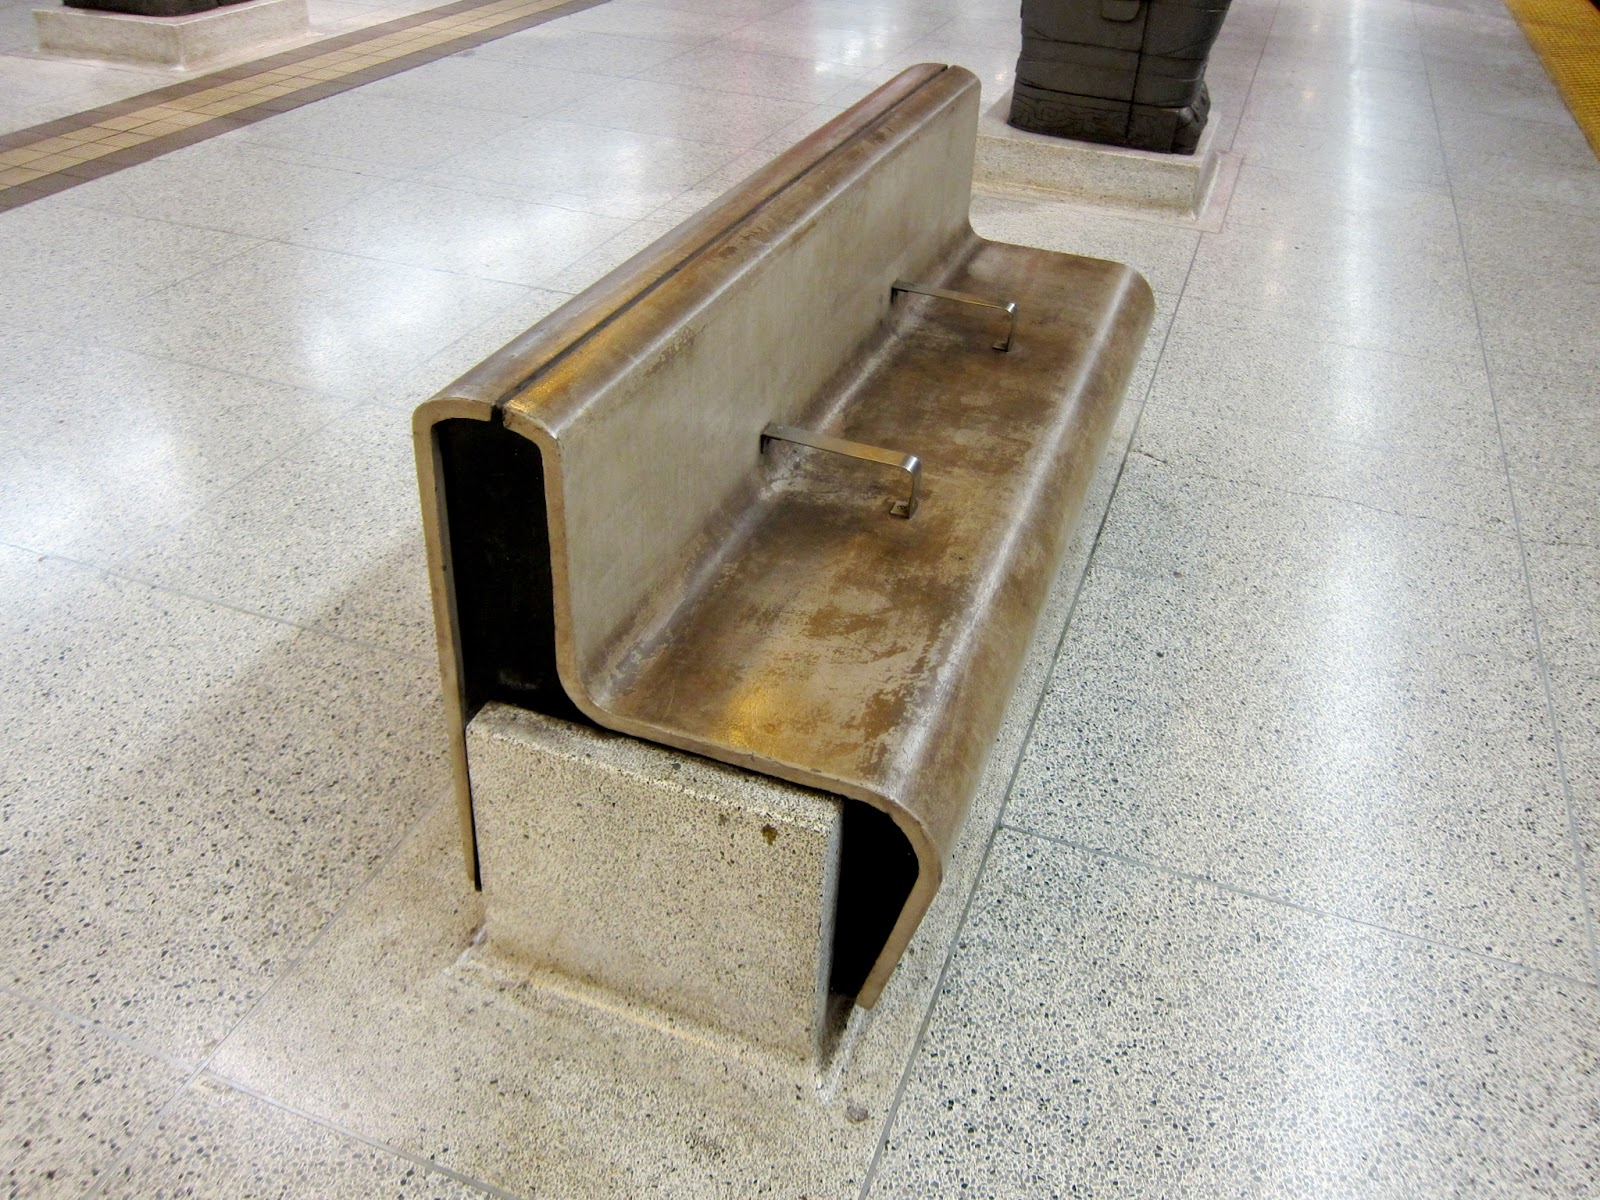 Bench at Museum subway station